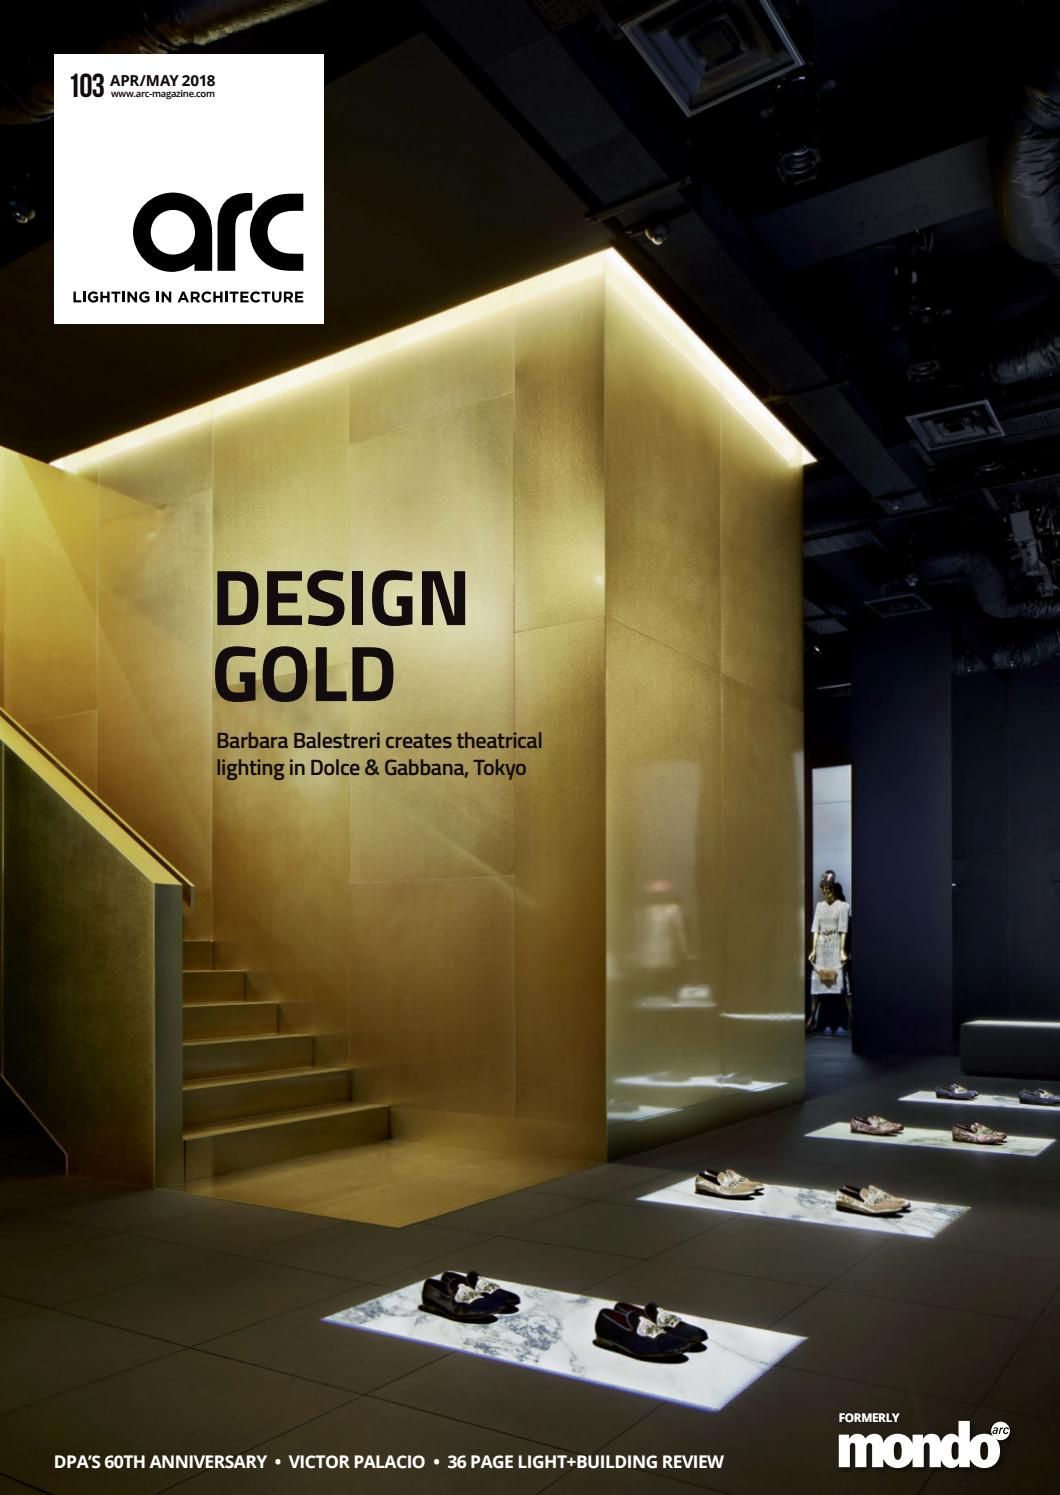 Arc April May 2018 Issue 103 By Mondiale Media Issuu